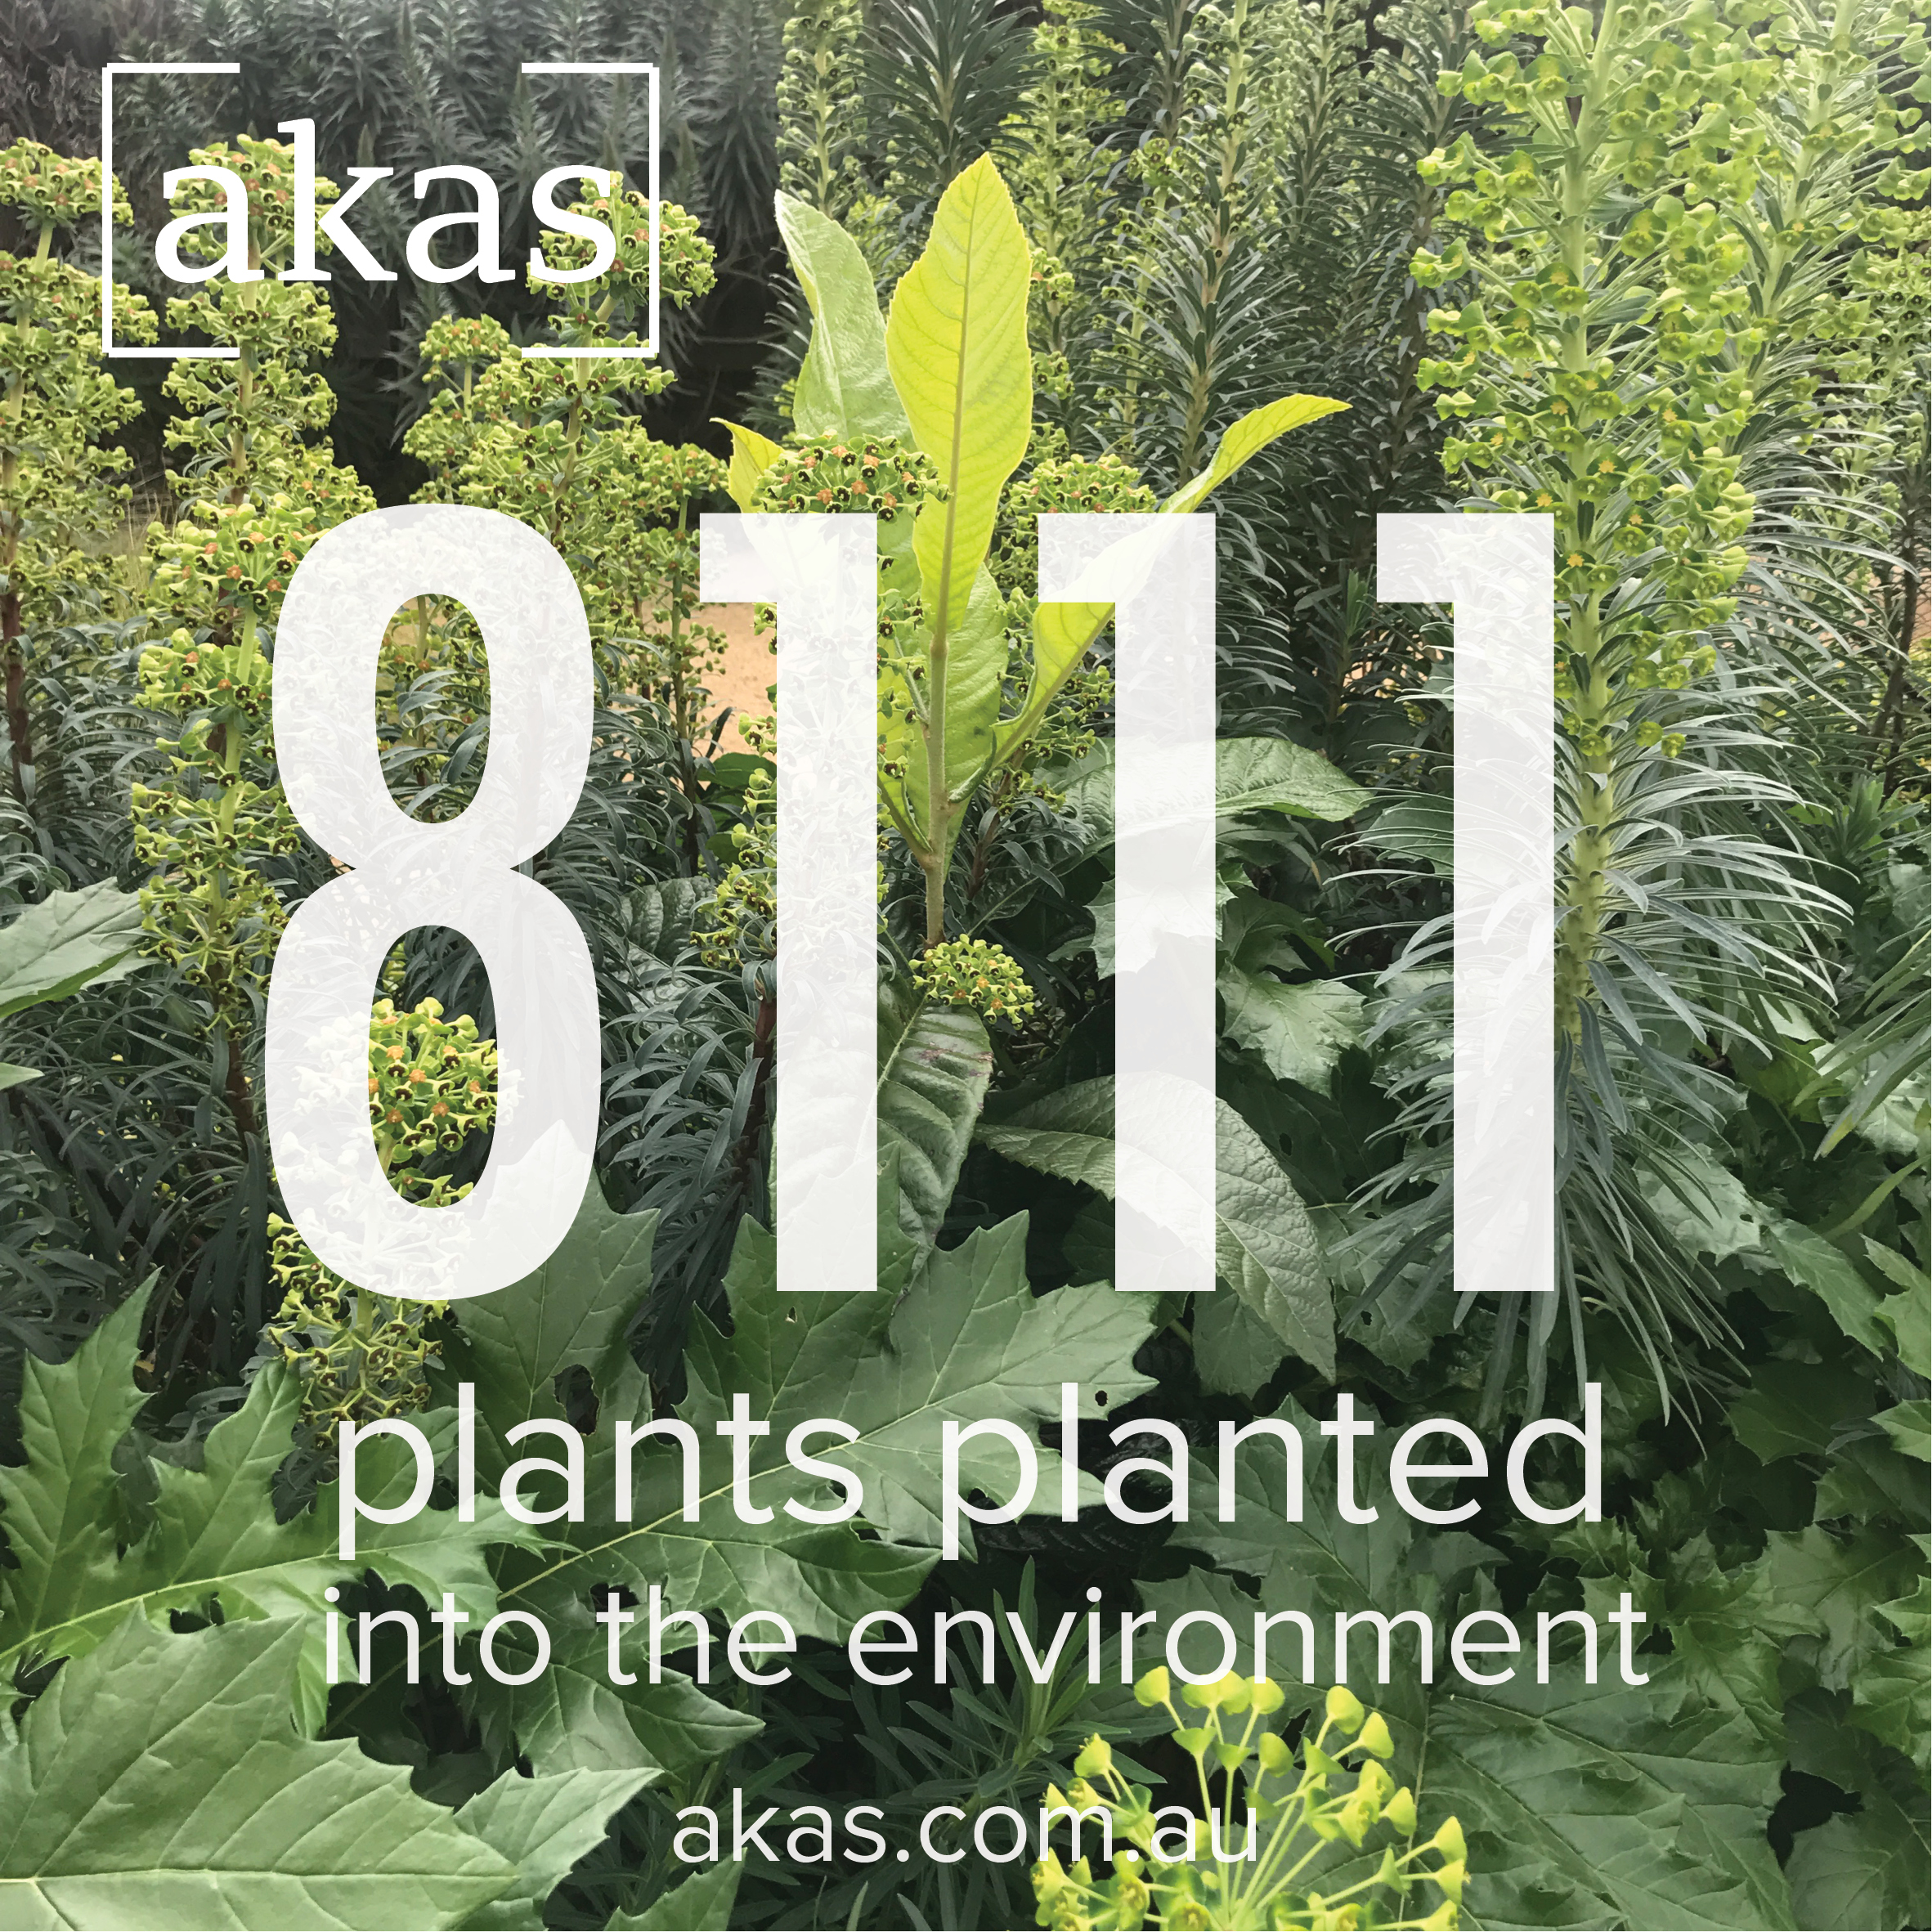 As of August 2018, AKAS has planted 8,111 plants into the environment! Follow us on instagram  @akas_landscape  to follow our journey!